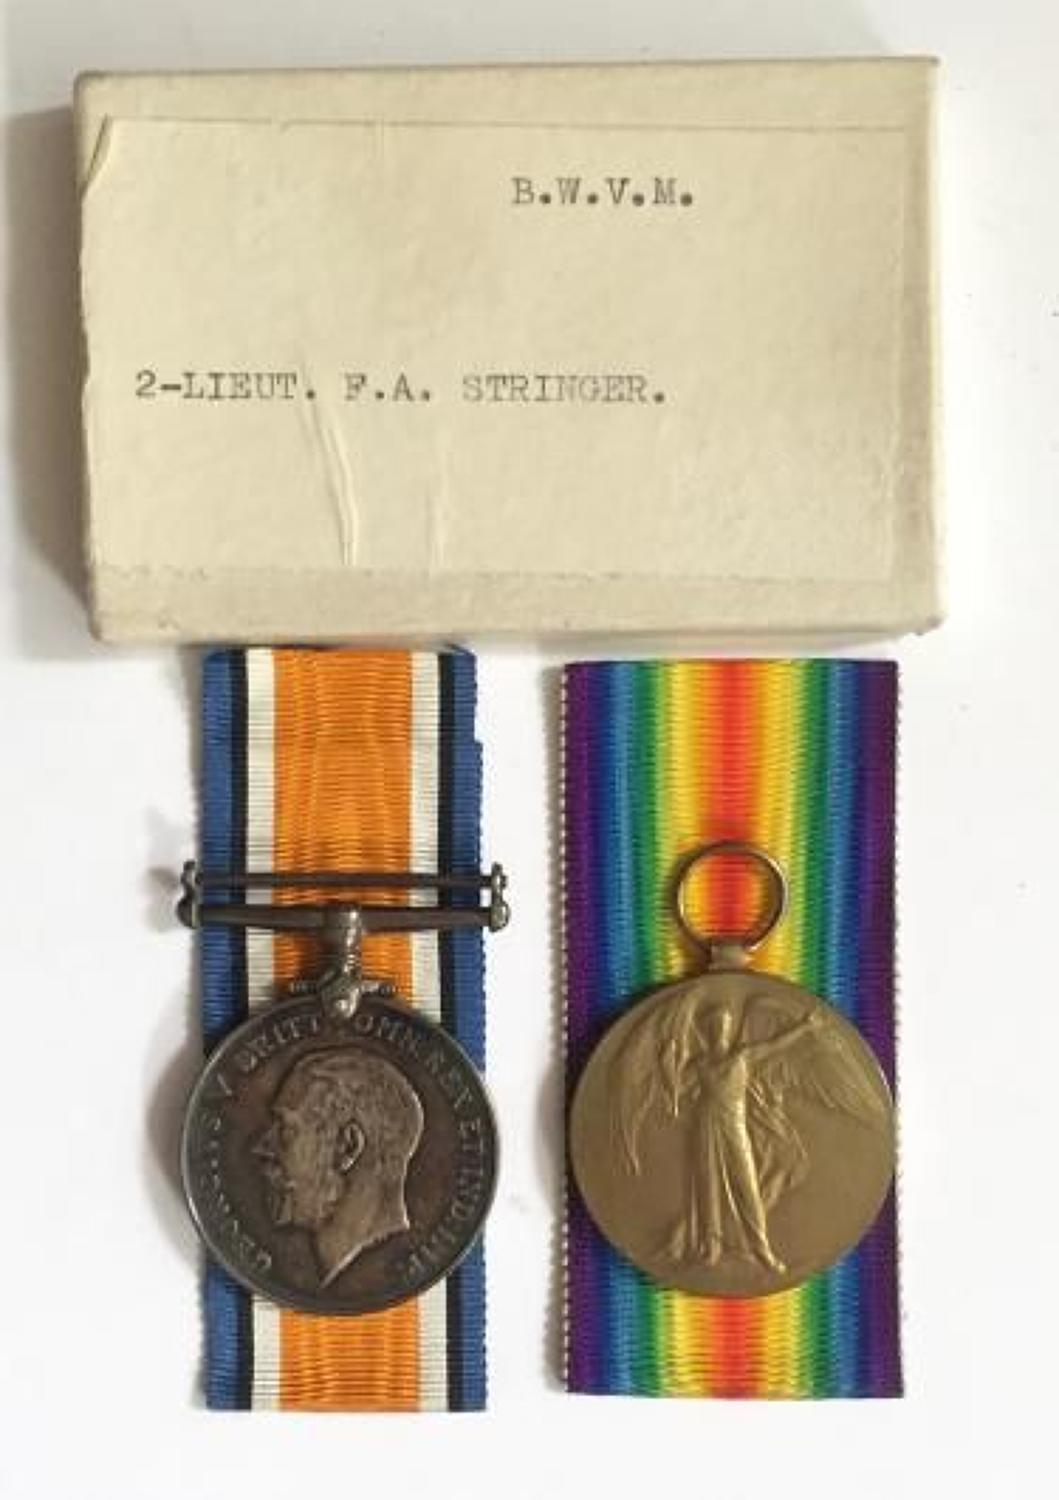 WW1 Royal Welsh Fusiliers Officer's Pair of Medals.